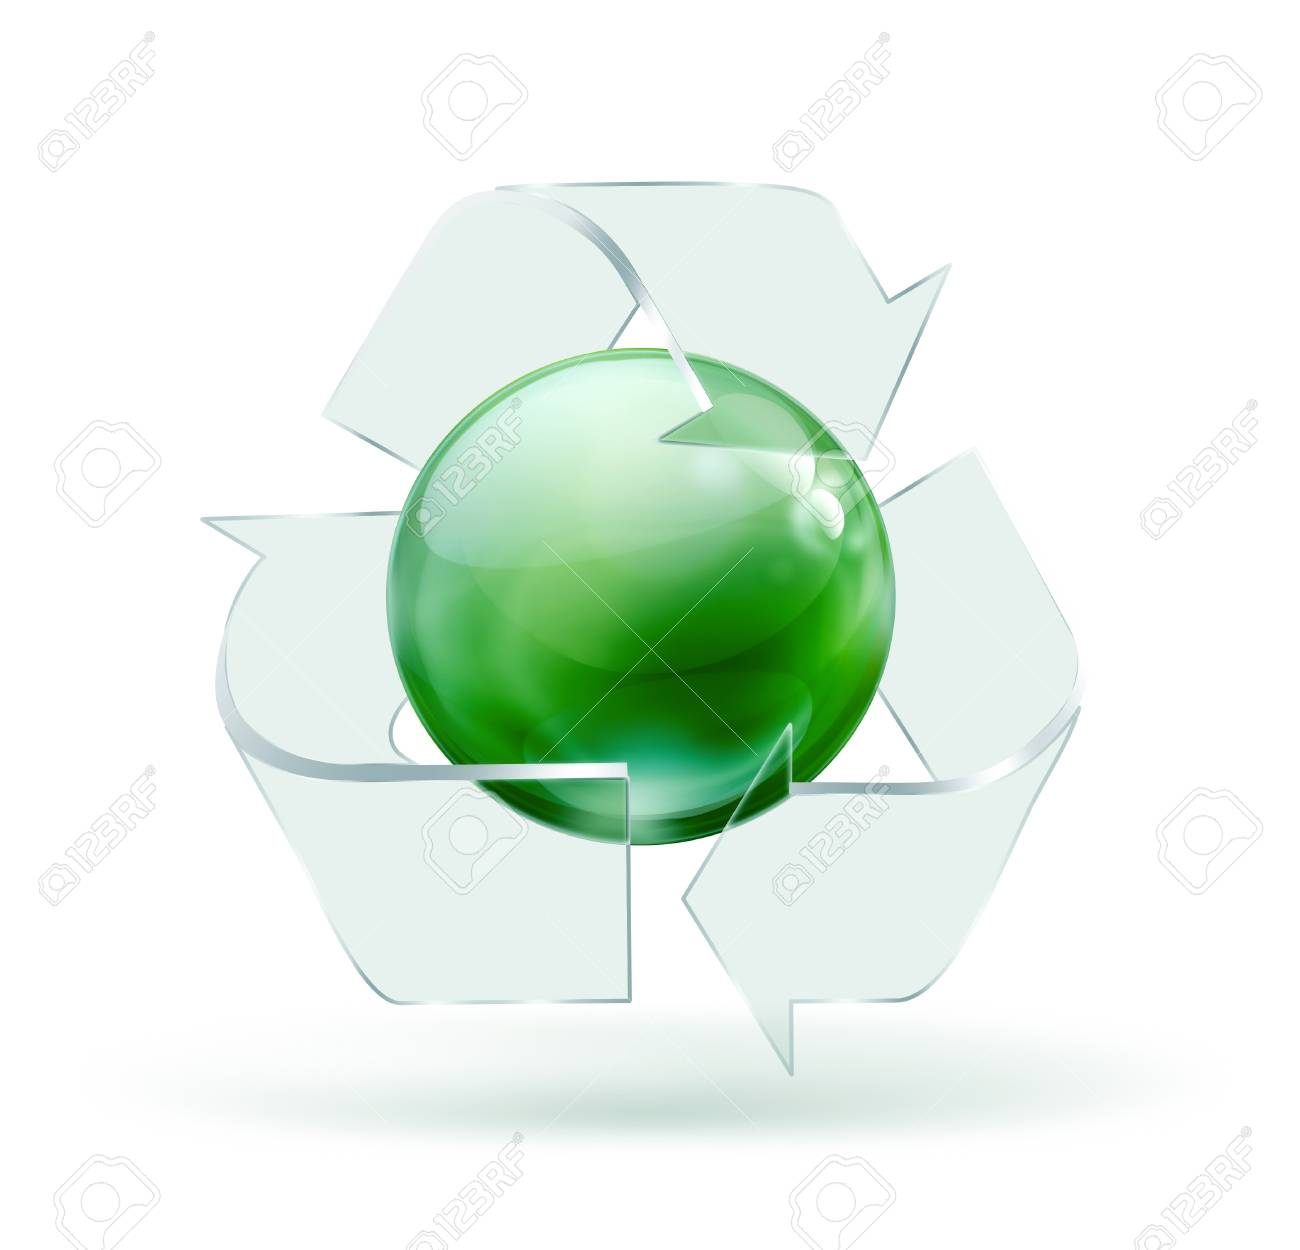 Glass Recycling Symbol On White Background Stock Photo Picture And